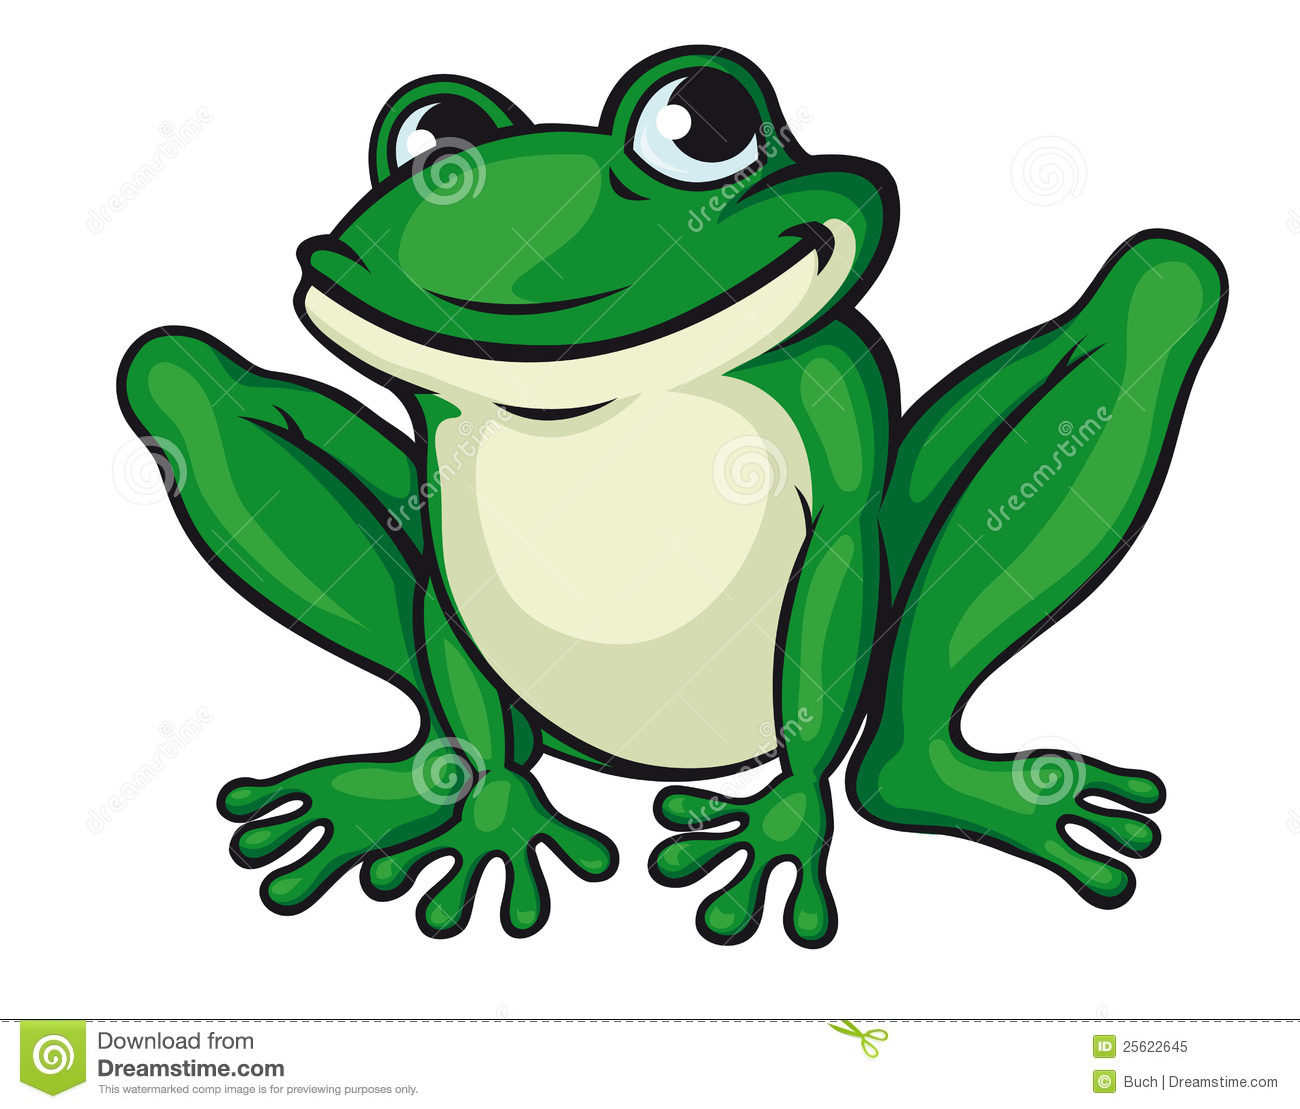 Big Green Frog Royalty Free Stock Photo - Image: 25622645